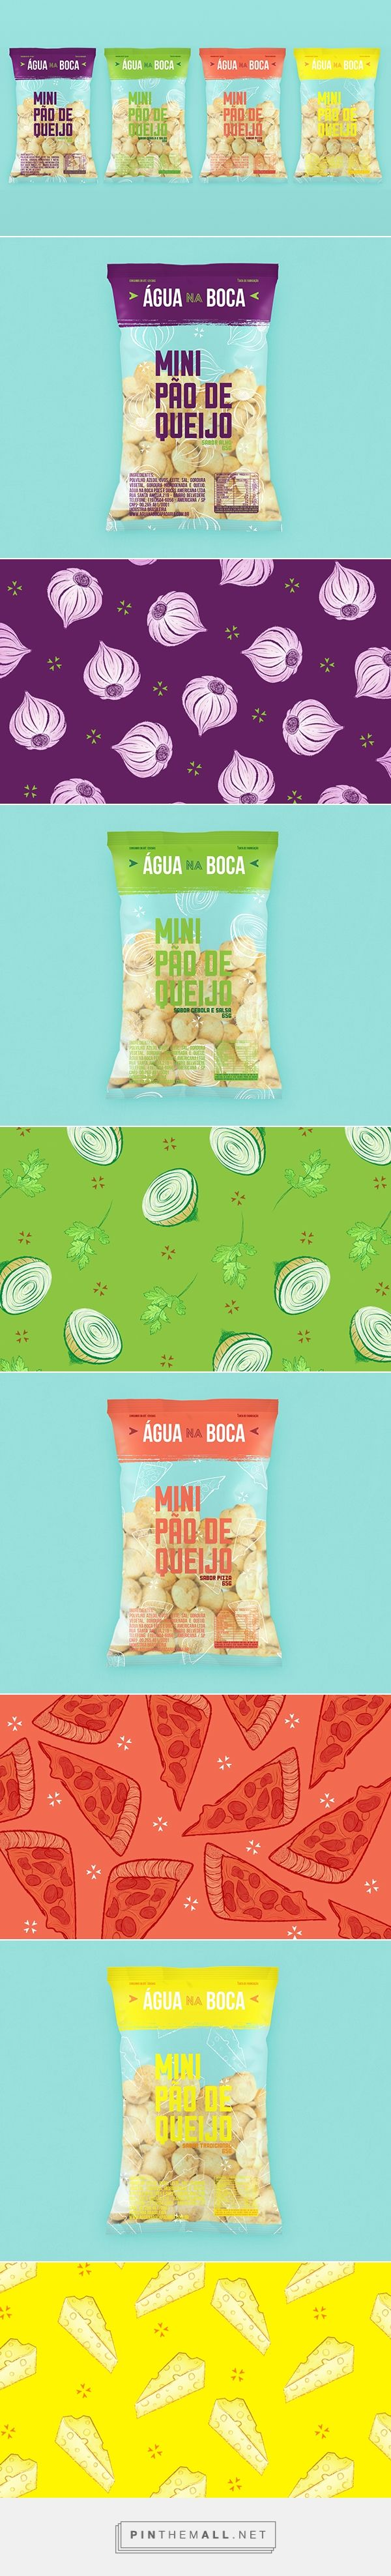 Embalagens - Água na Boca / Packaging project for a small bakery based in Brazil